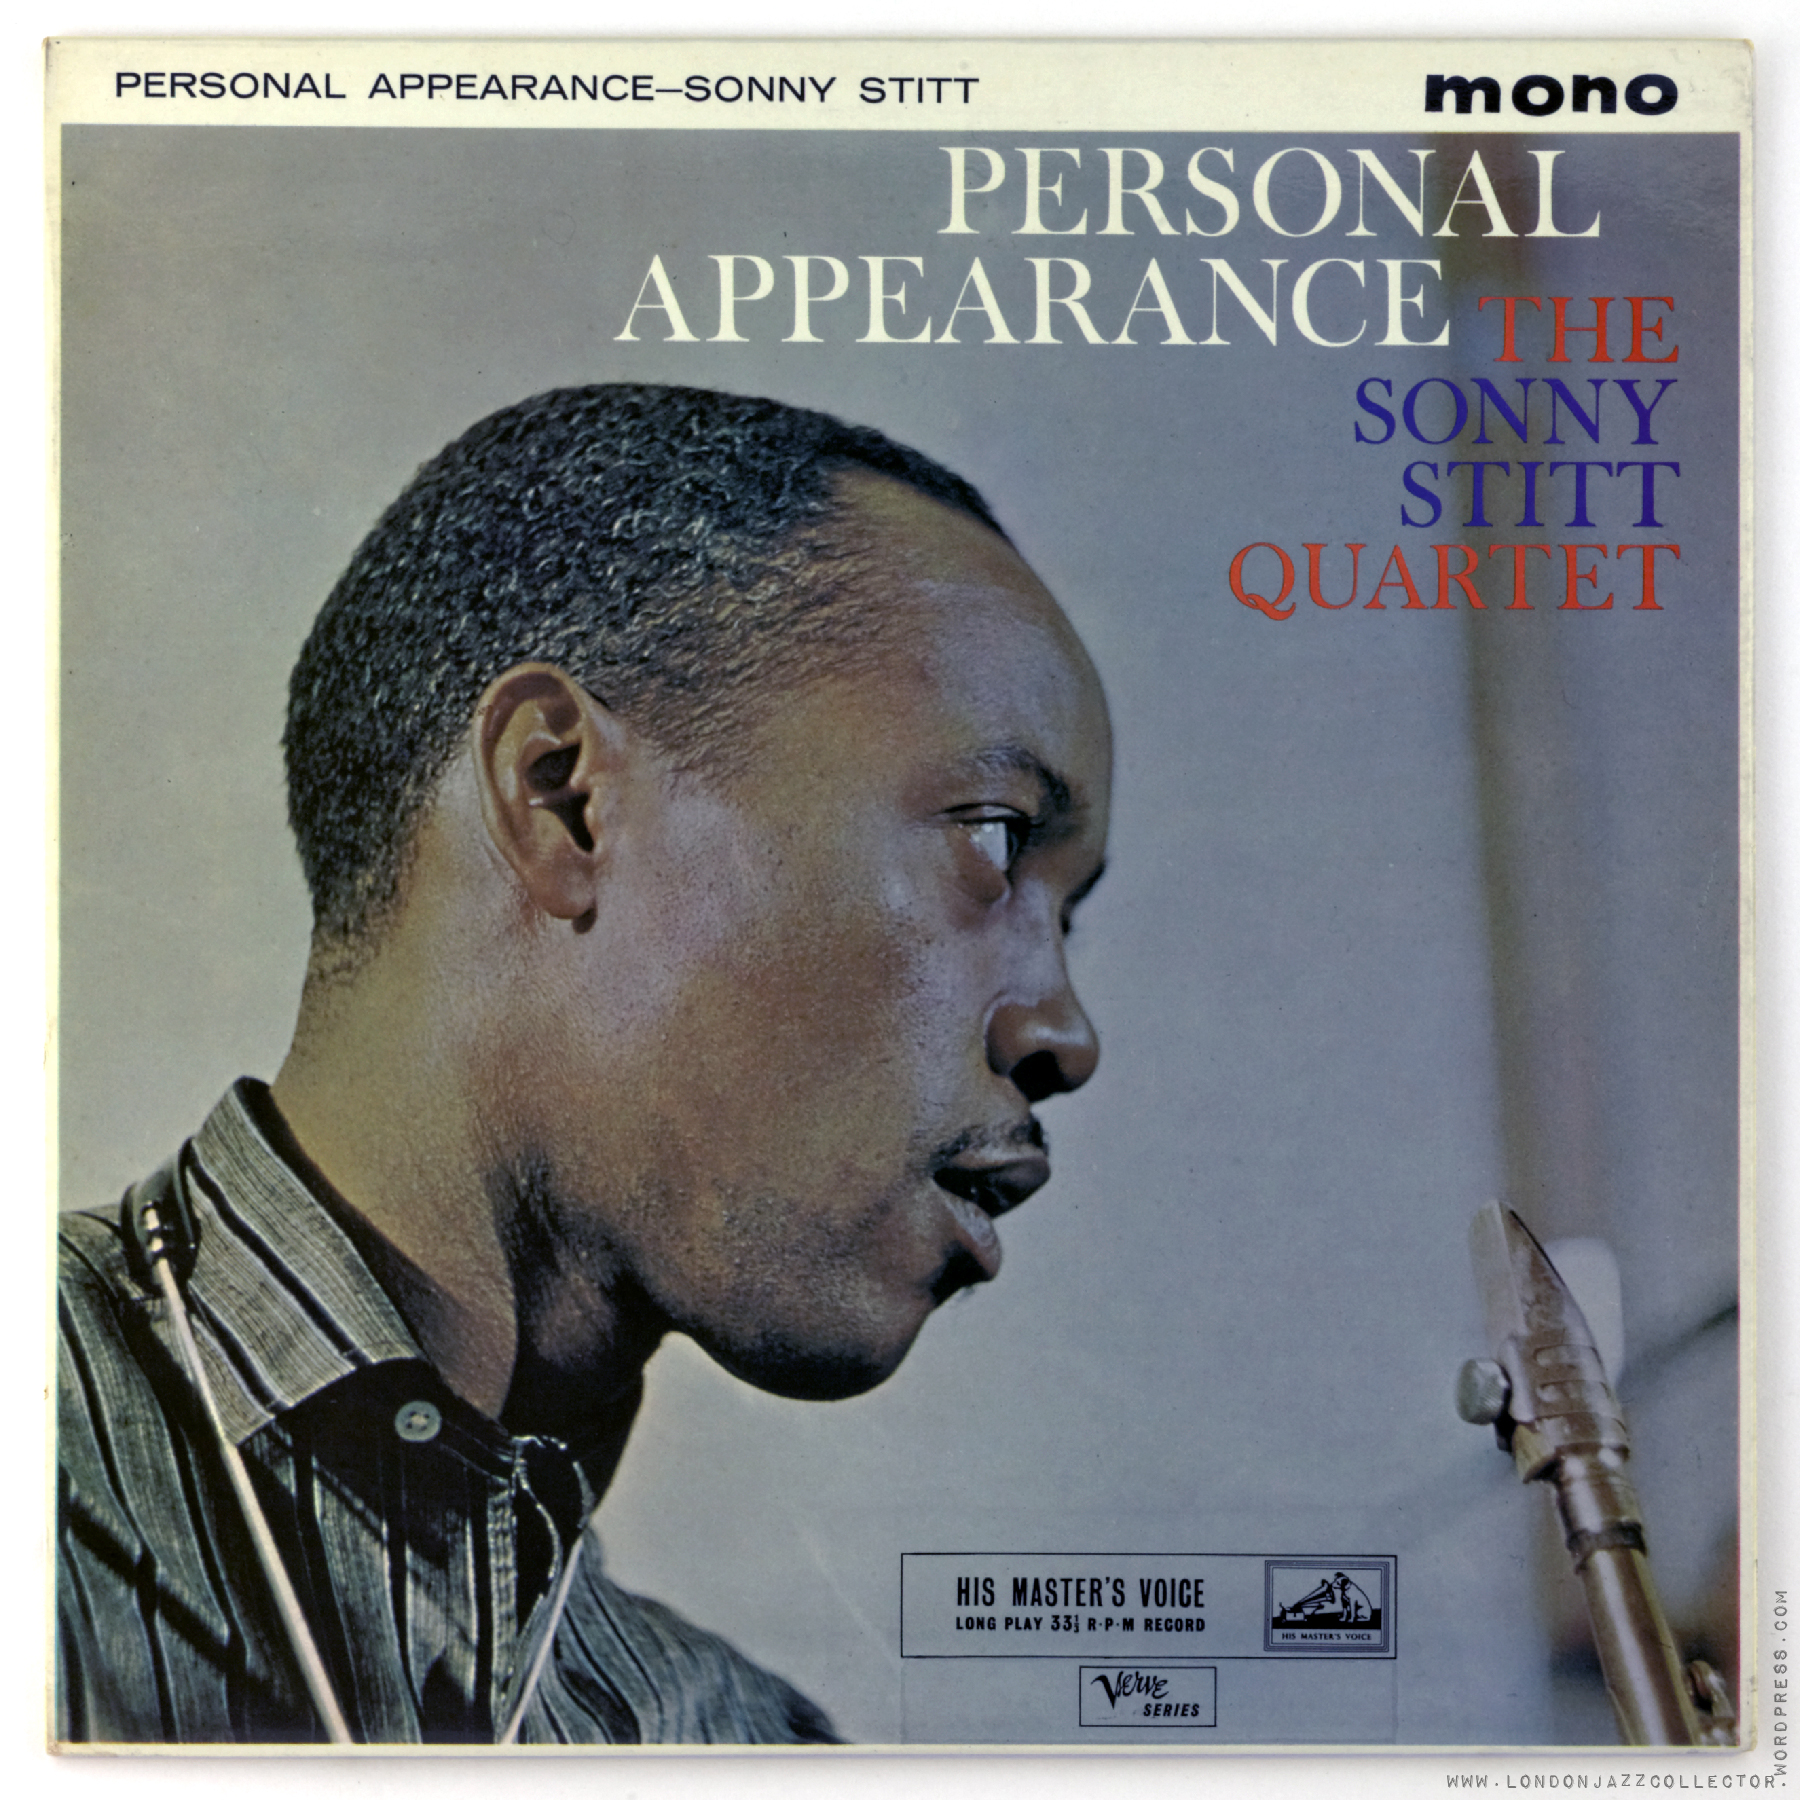 personal appearance Listen to personal appearance songs now on saavn 1957 english music album by sonny stitt 11 songs download mp3 songs or listen online: 1 easy to love .